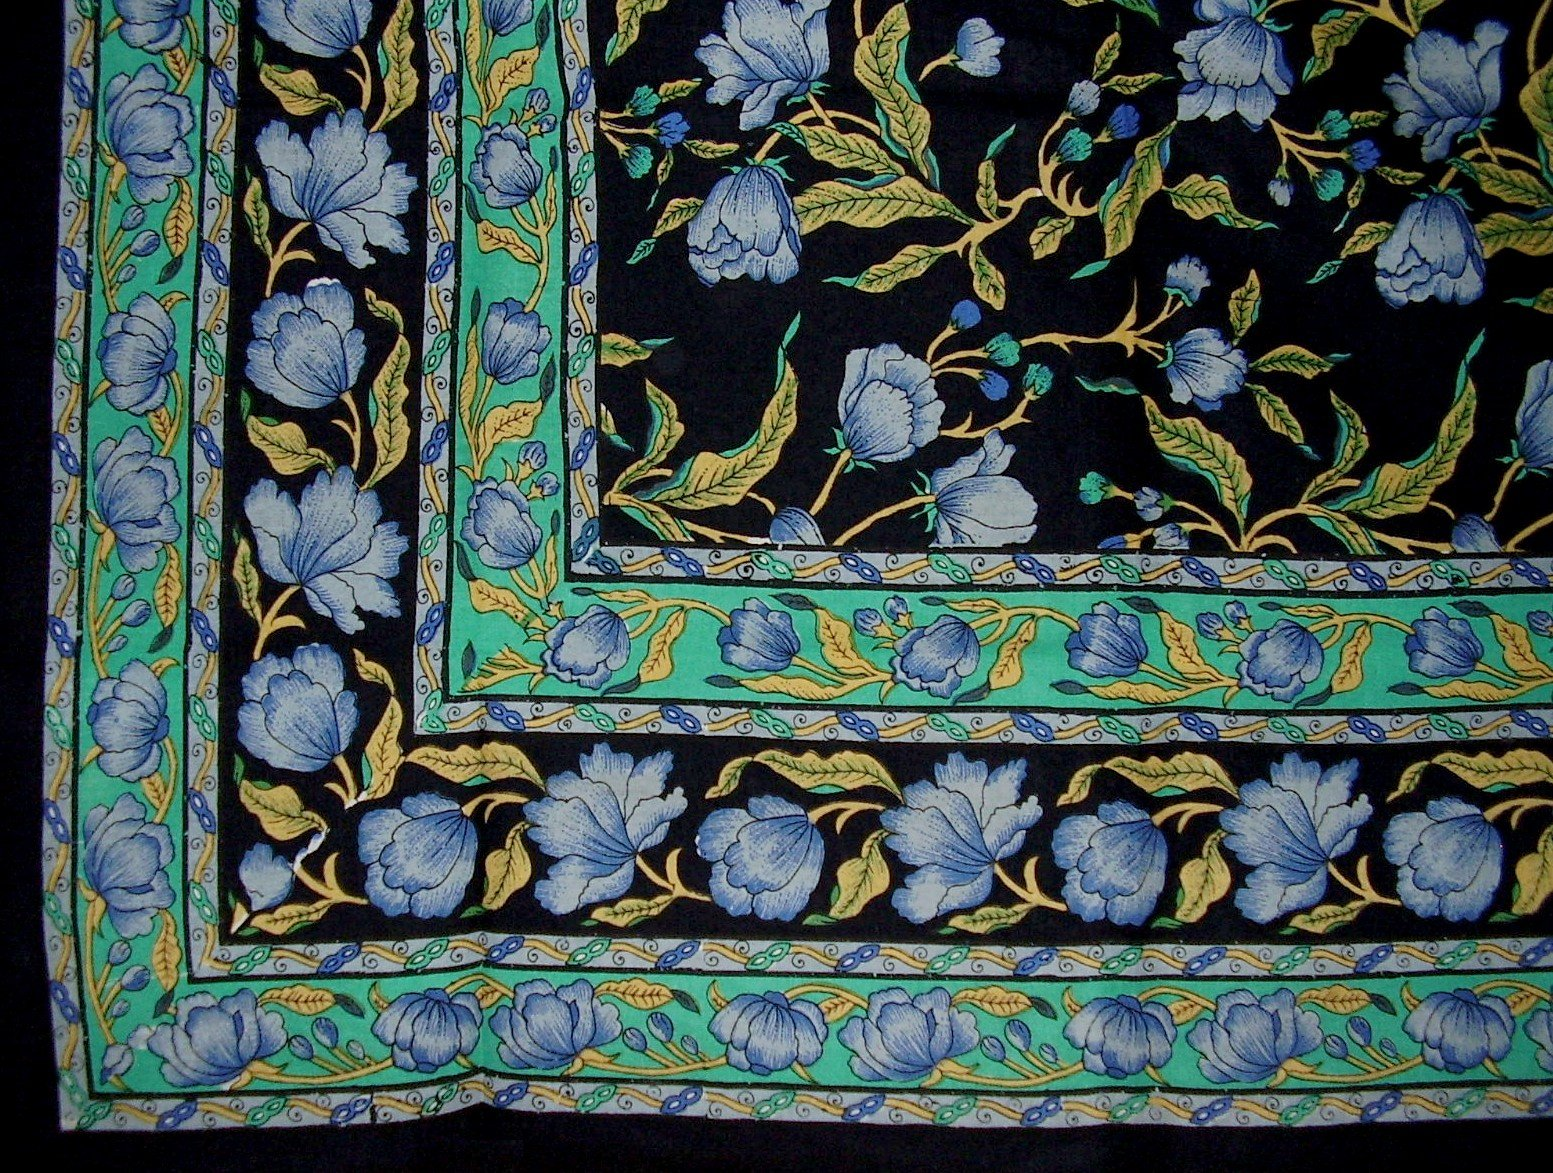 India Arts French Floral Tapestry Cotton Bedspread 106'' x 70'' Twin Blue on Black